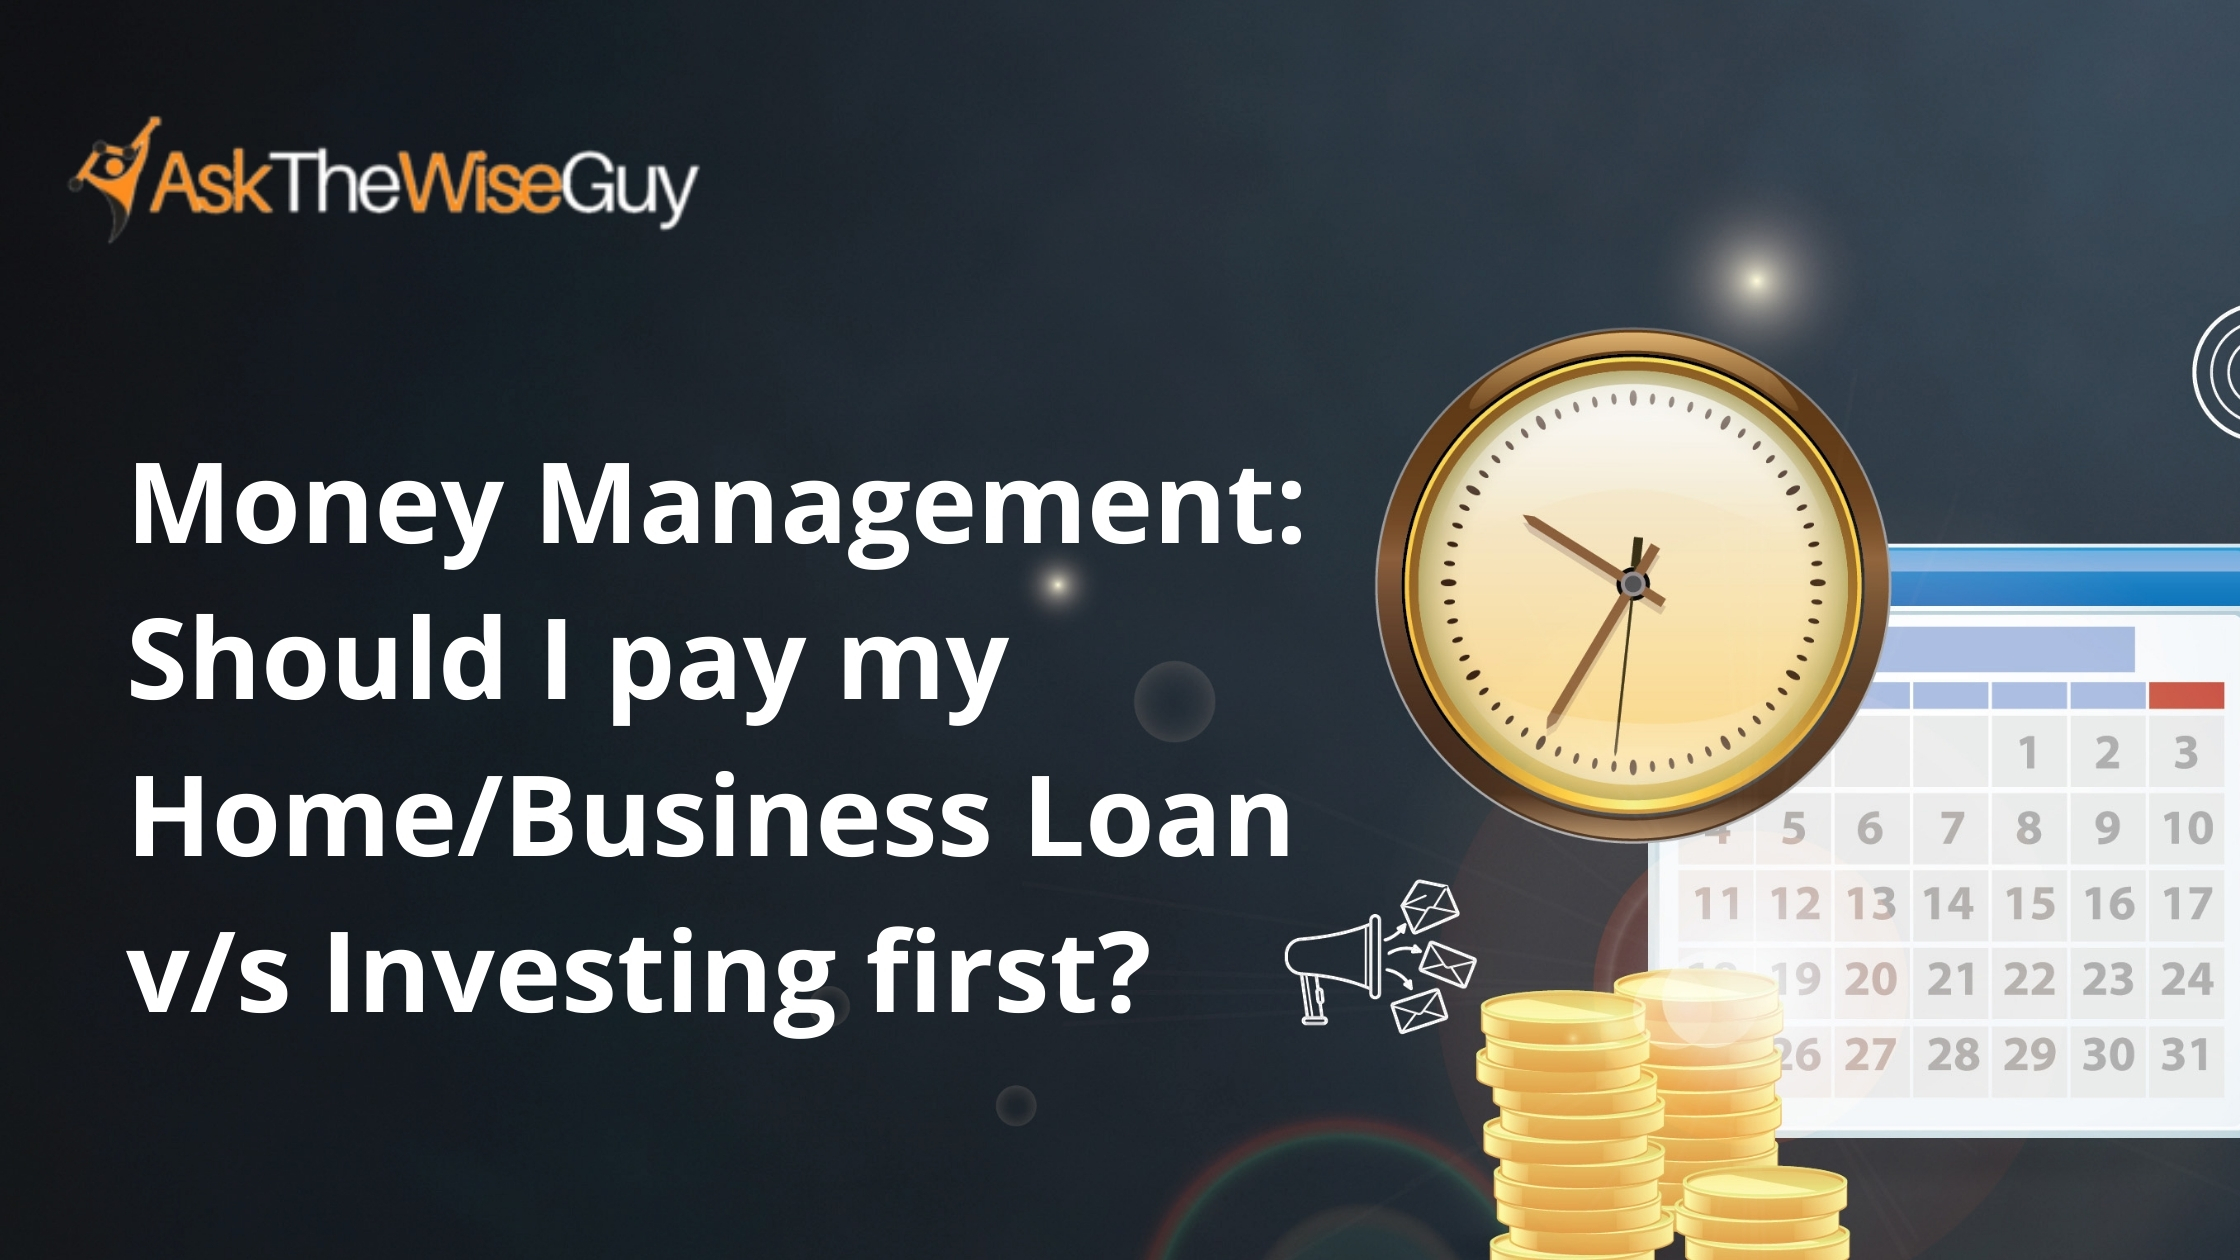 Money Management: Should I pay my Home/Business Loan v/s Investing first?